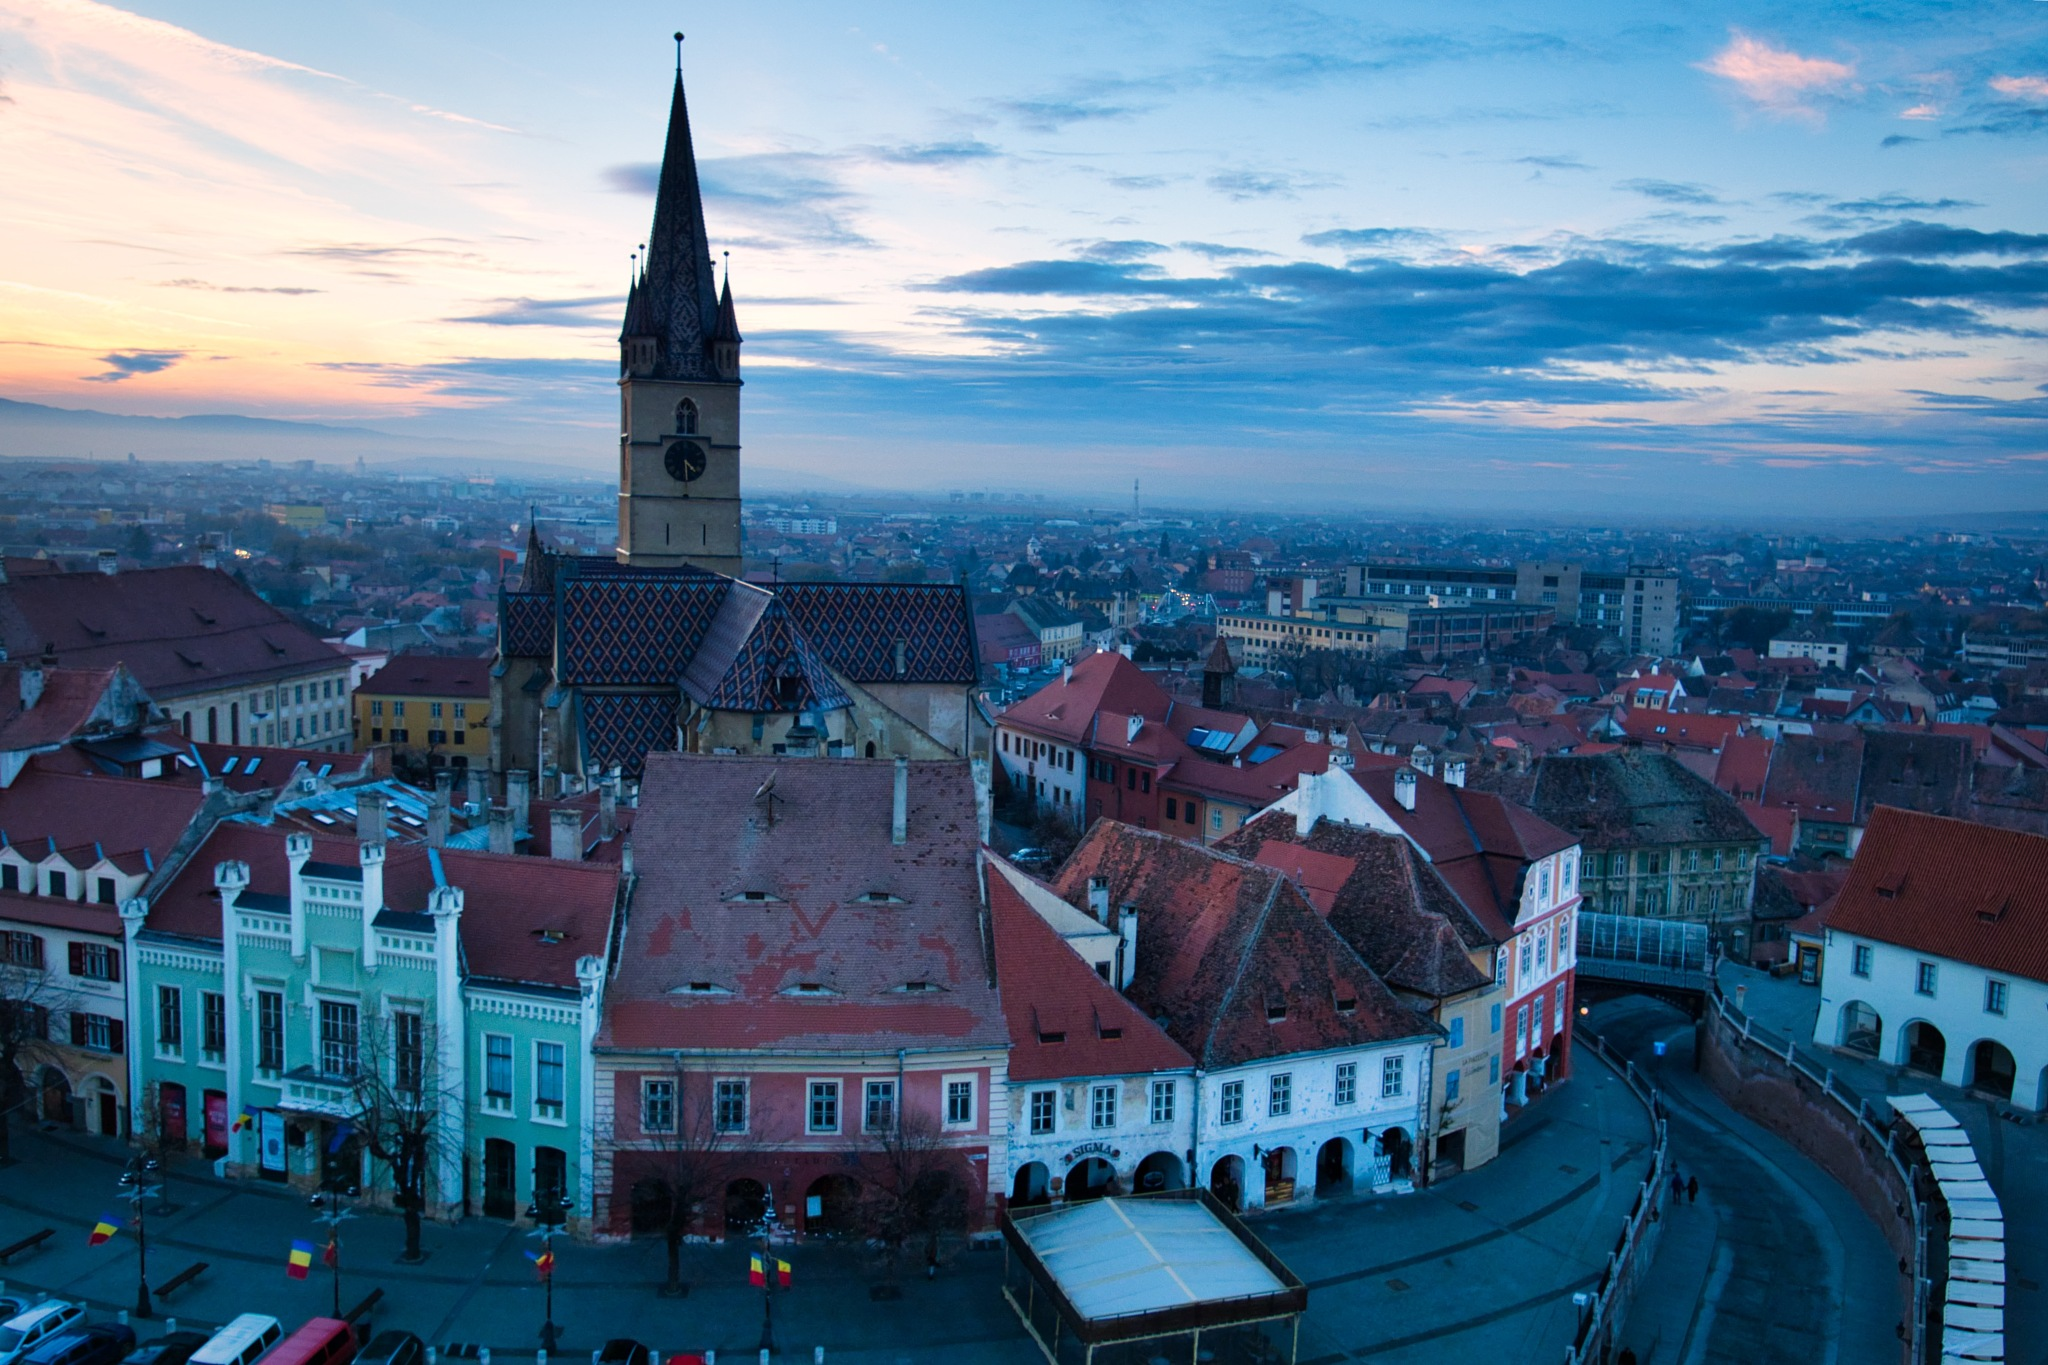 Sibiu at the end of the day by Adi Gli